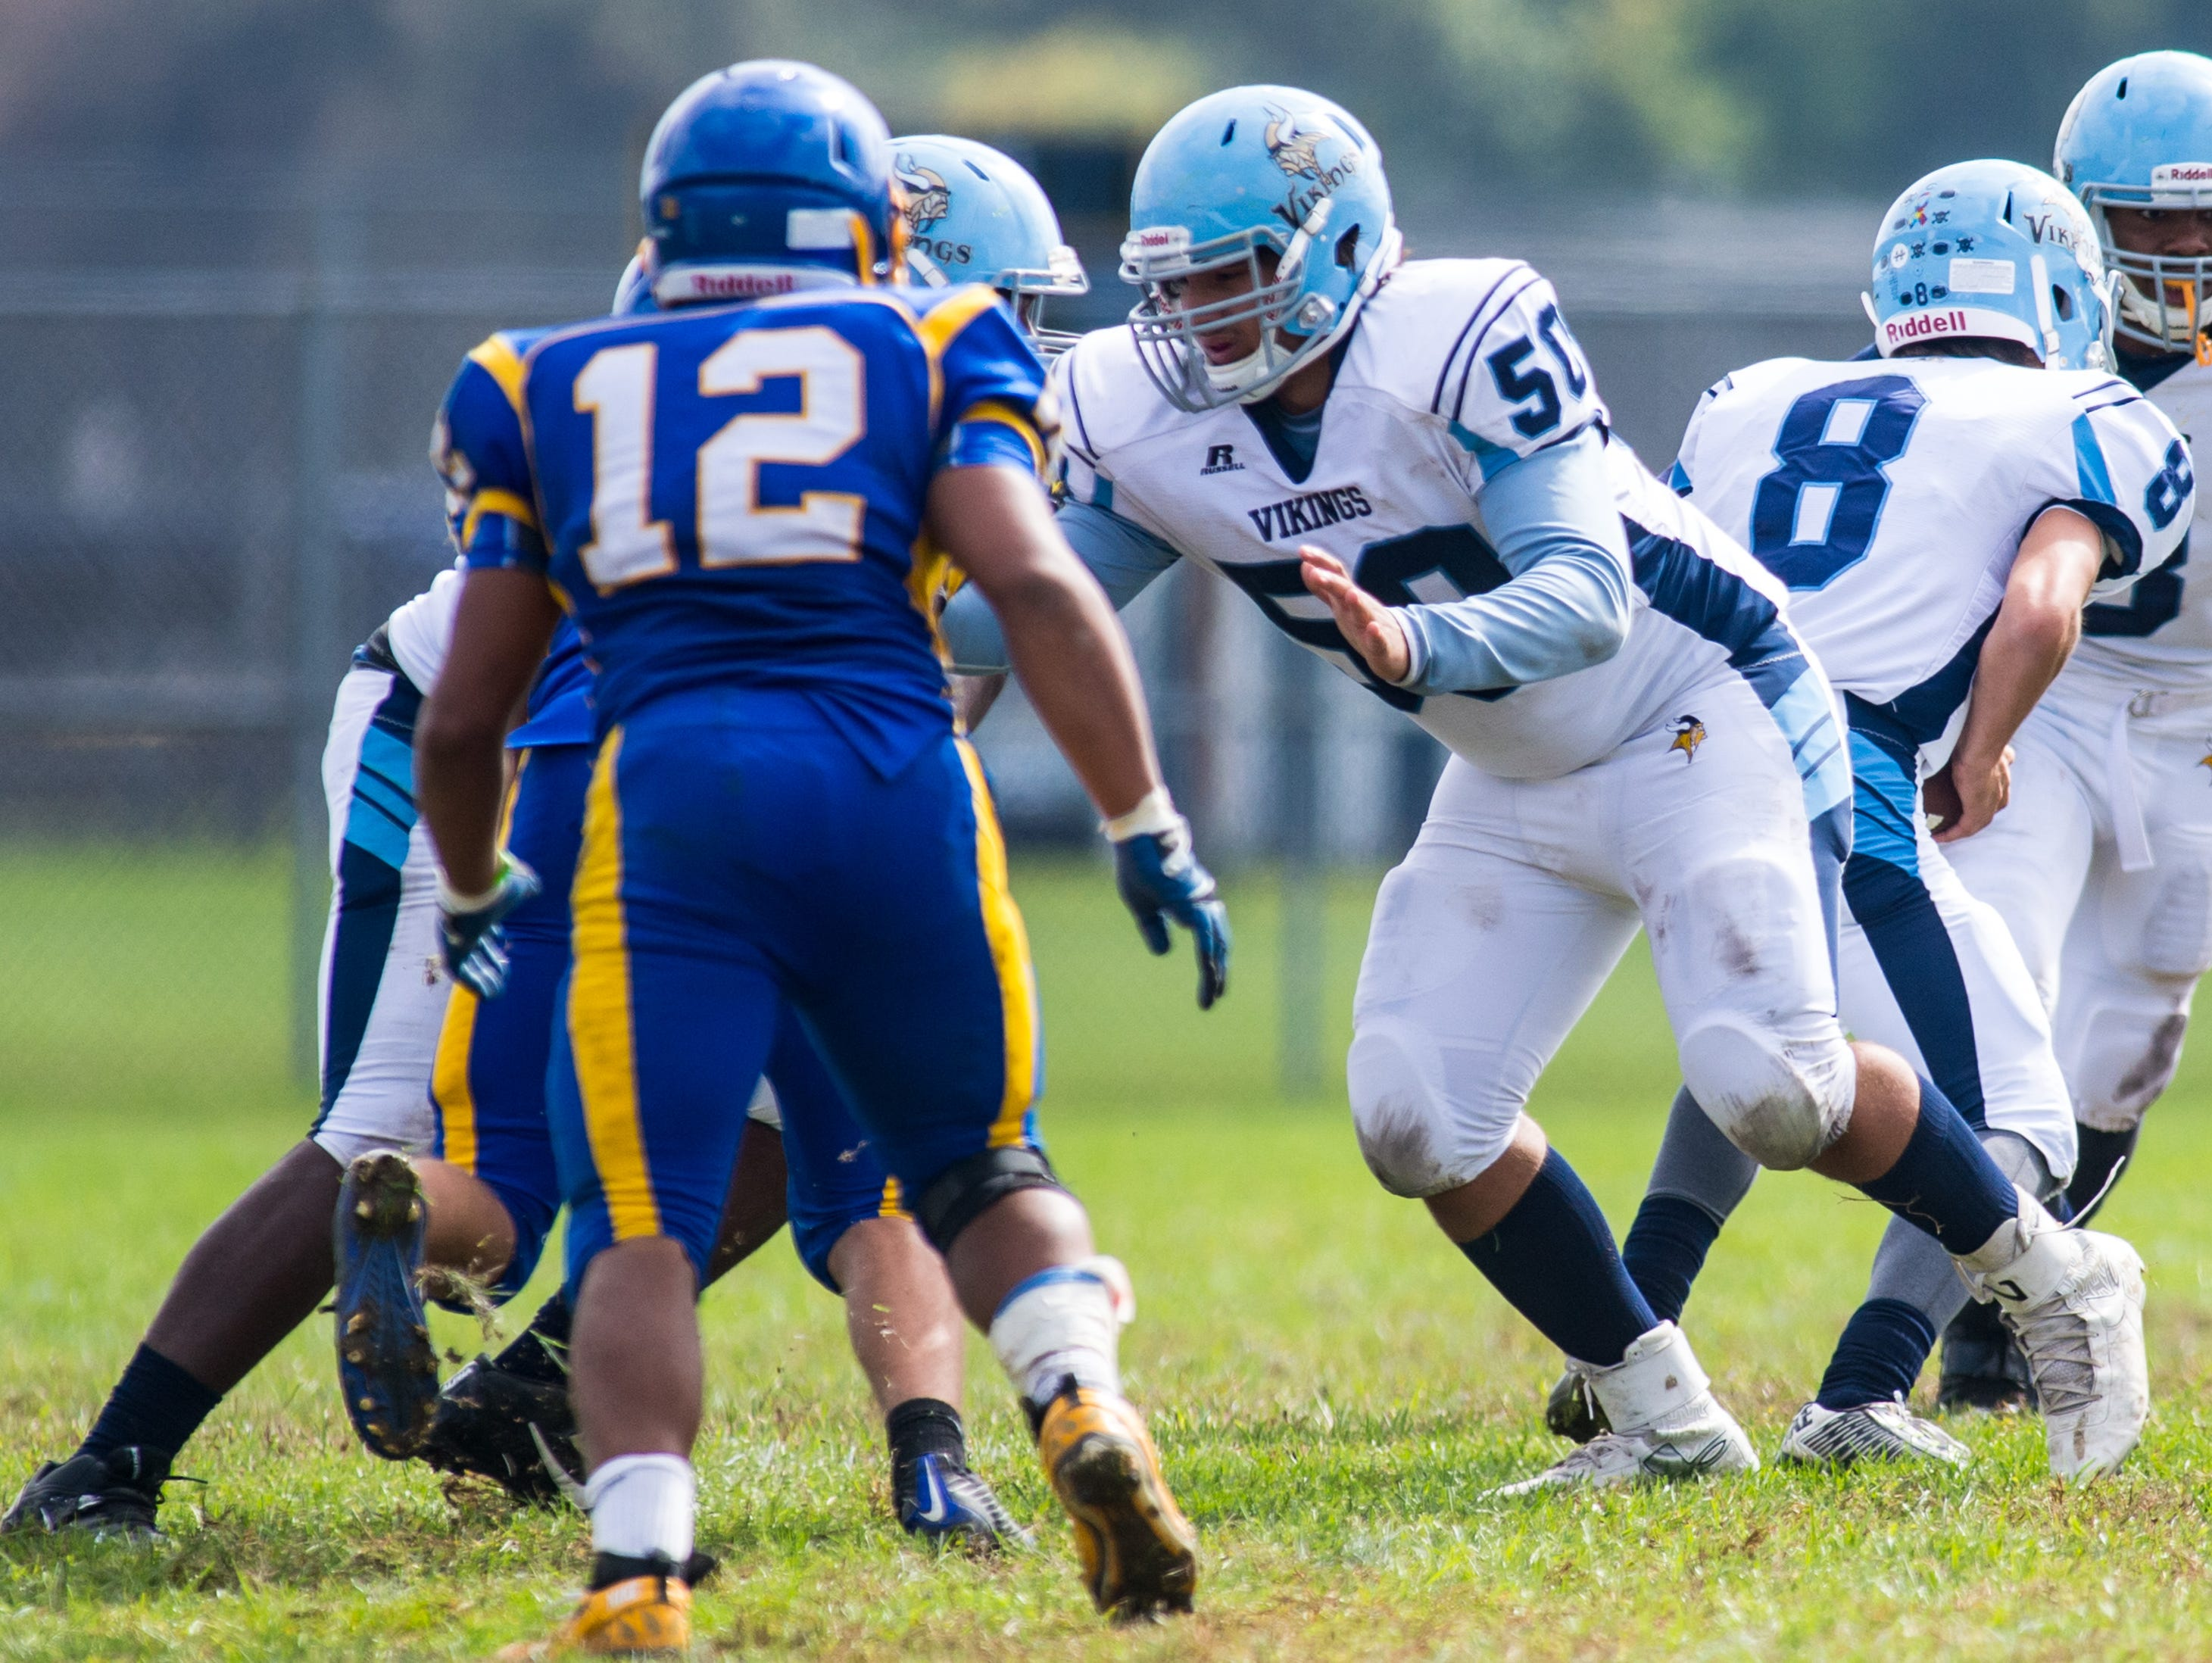 Cape Henlopen center Julian Medina (50) goes out for a block after snapping the ball to quarterback Dillon Adams (8) against Sussex Central in Georgetown on Saturday, October 10th.